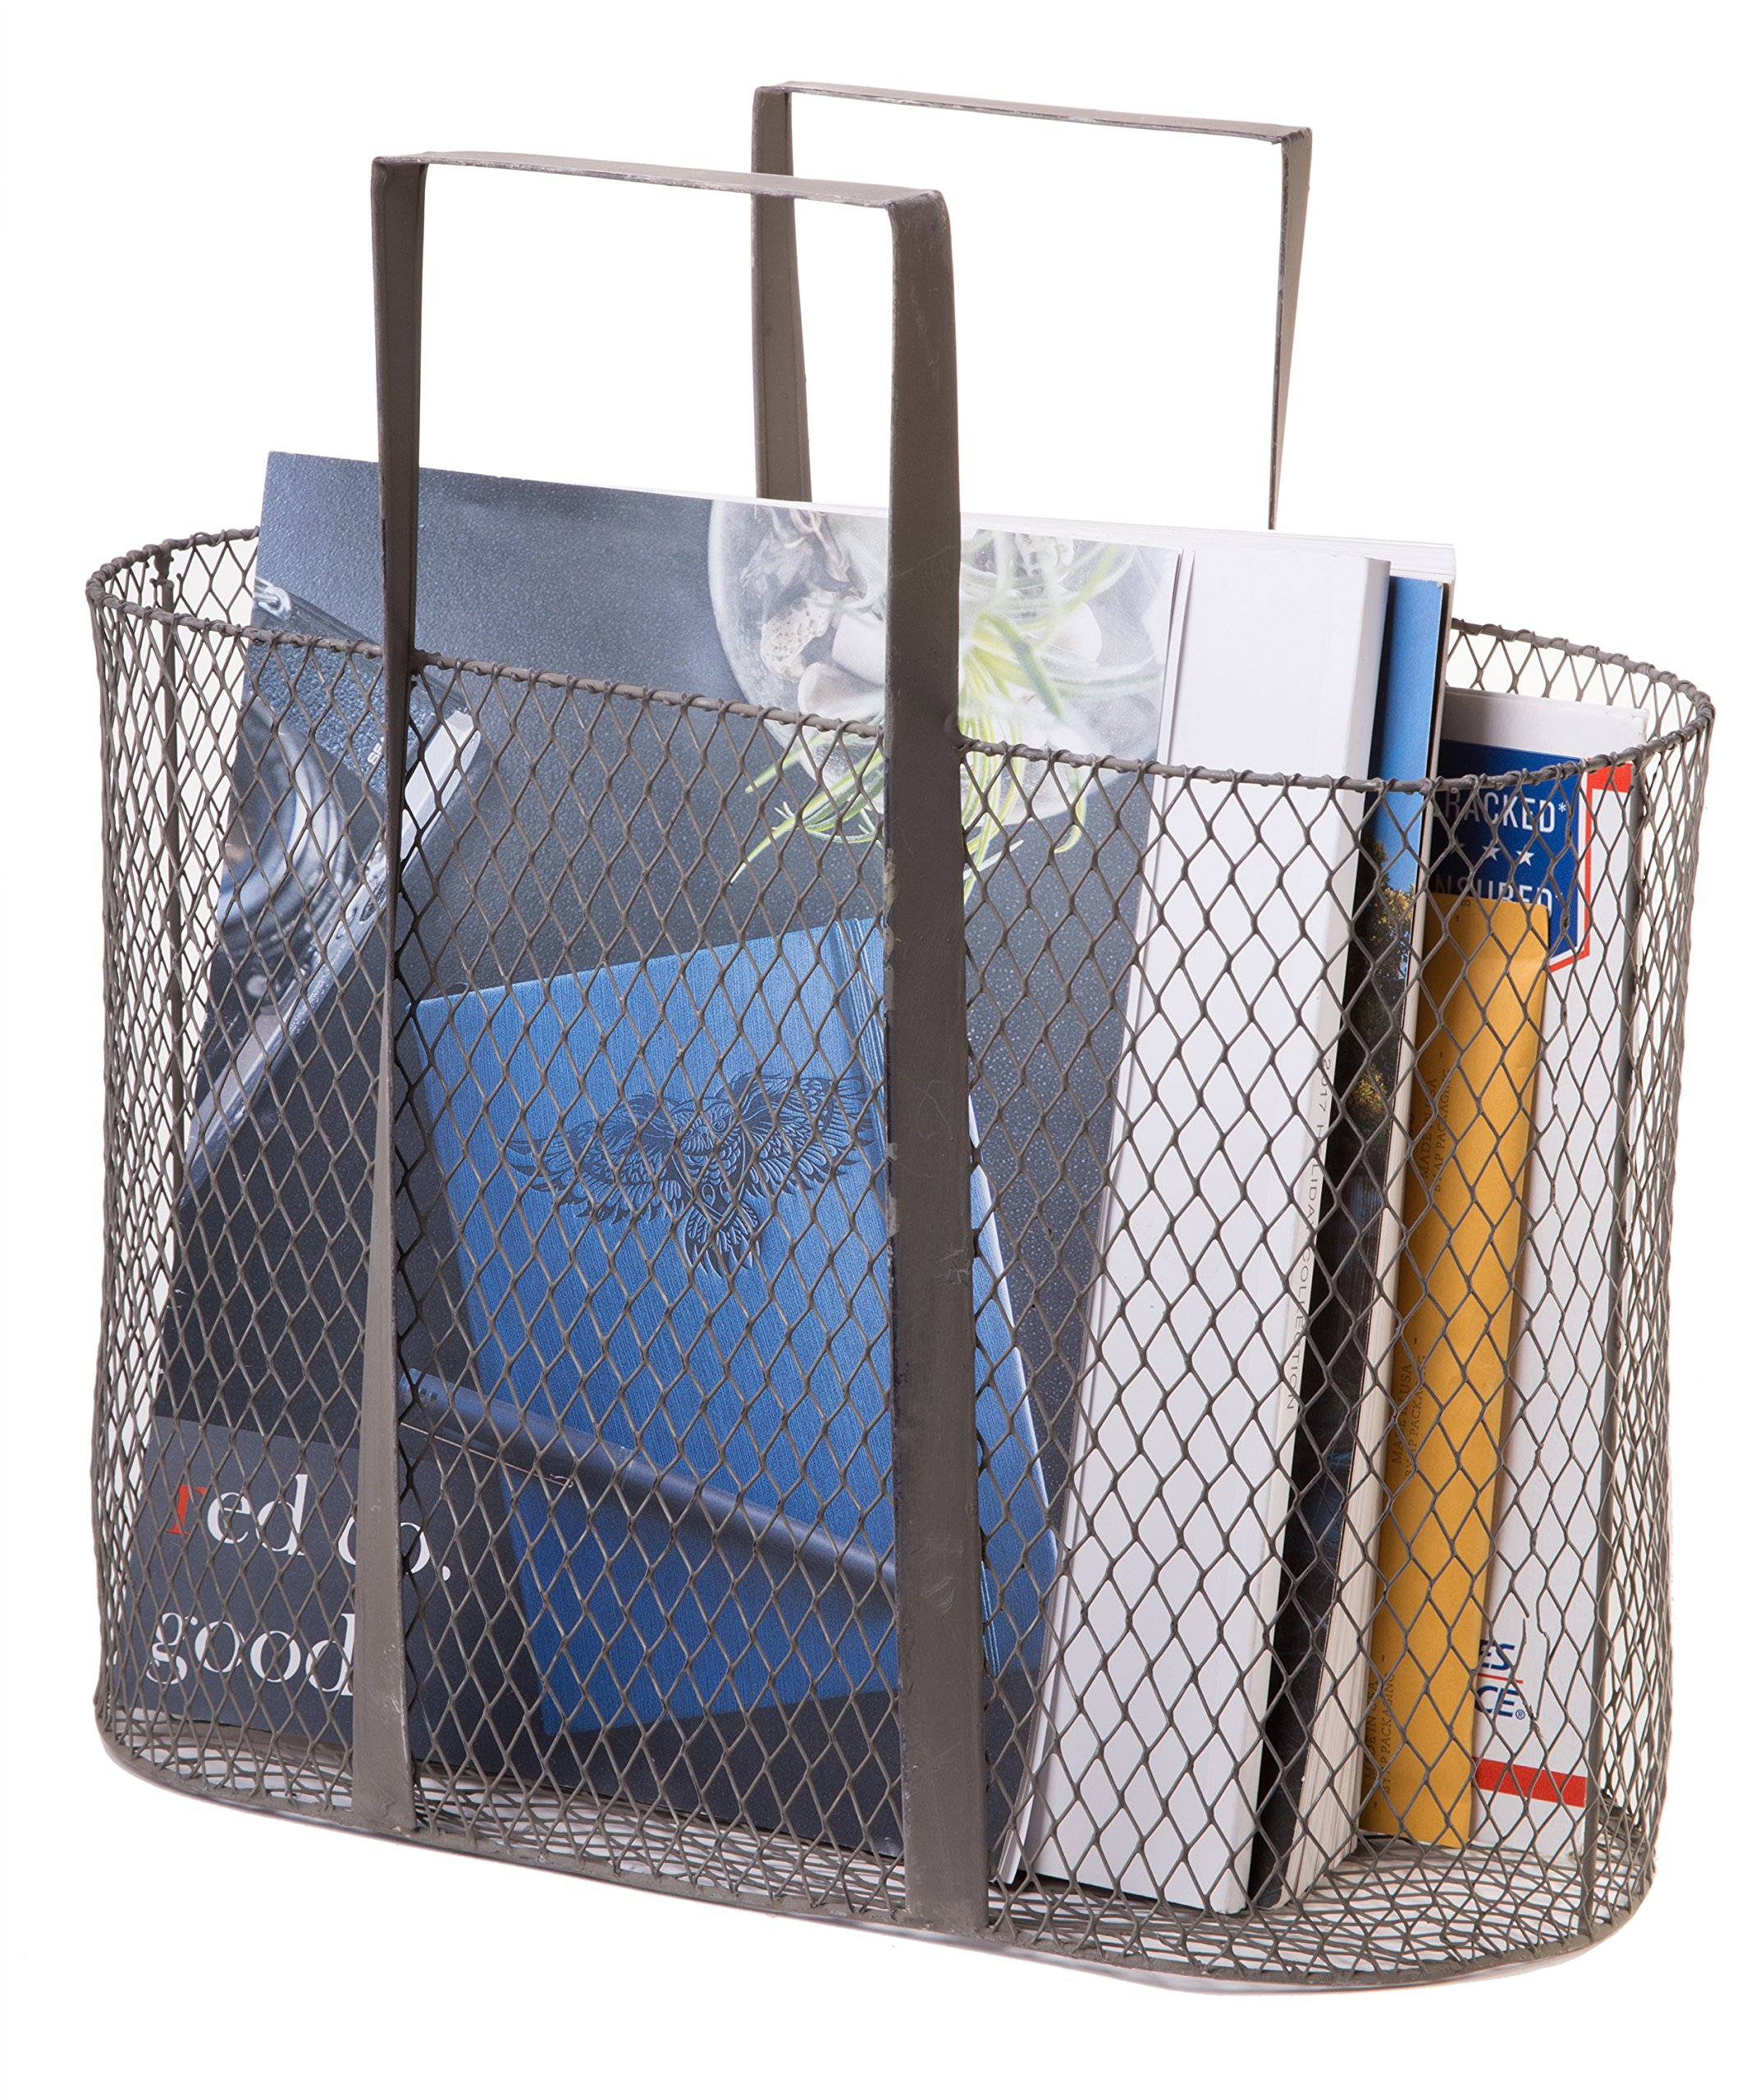 Red Co. Farmhouse Chic Wire Mesh Carry All Basket, Metal Decorative Storage, Large Size, 14-inch